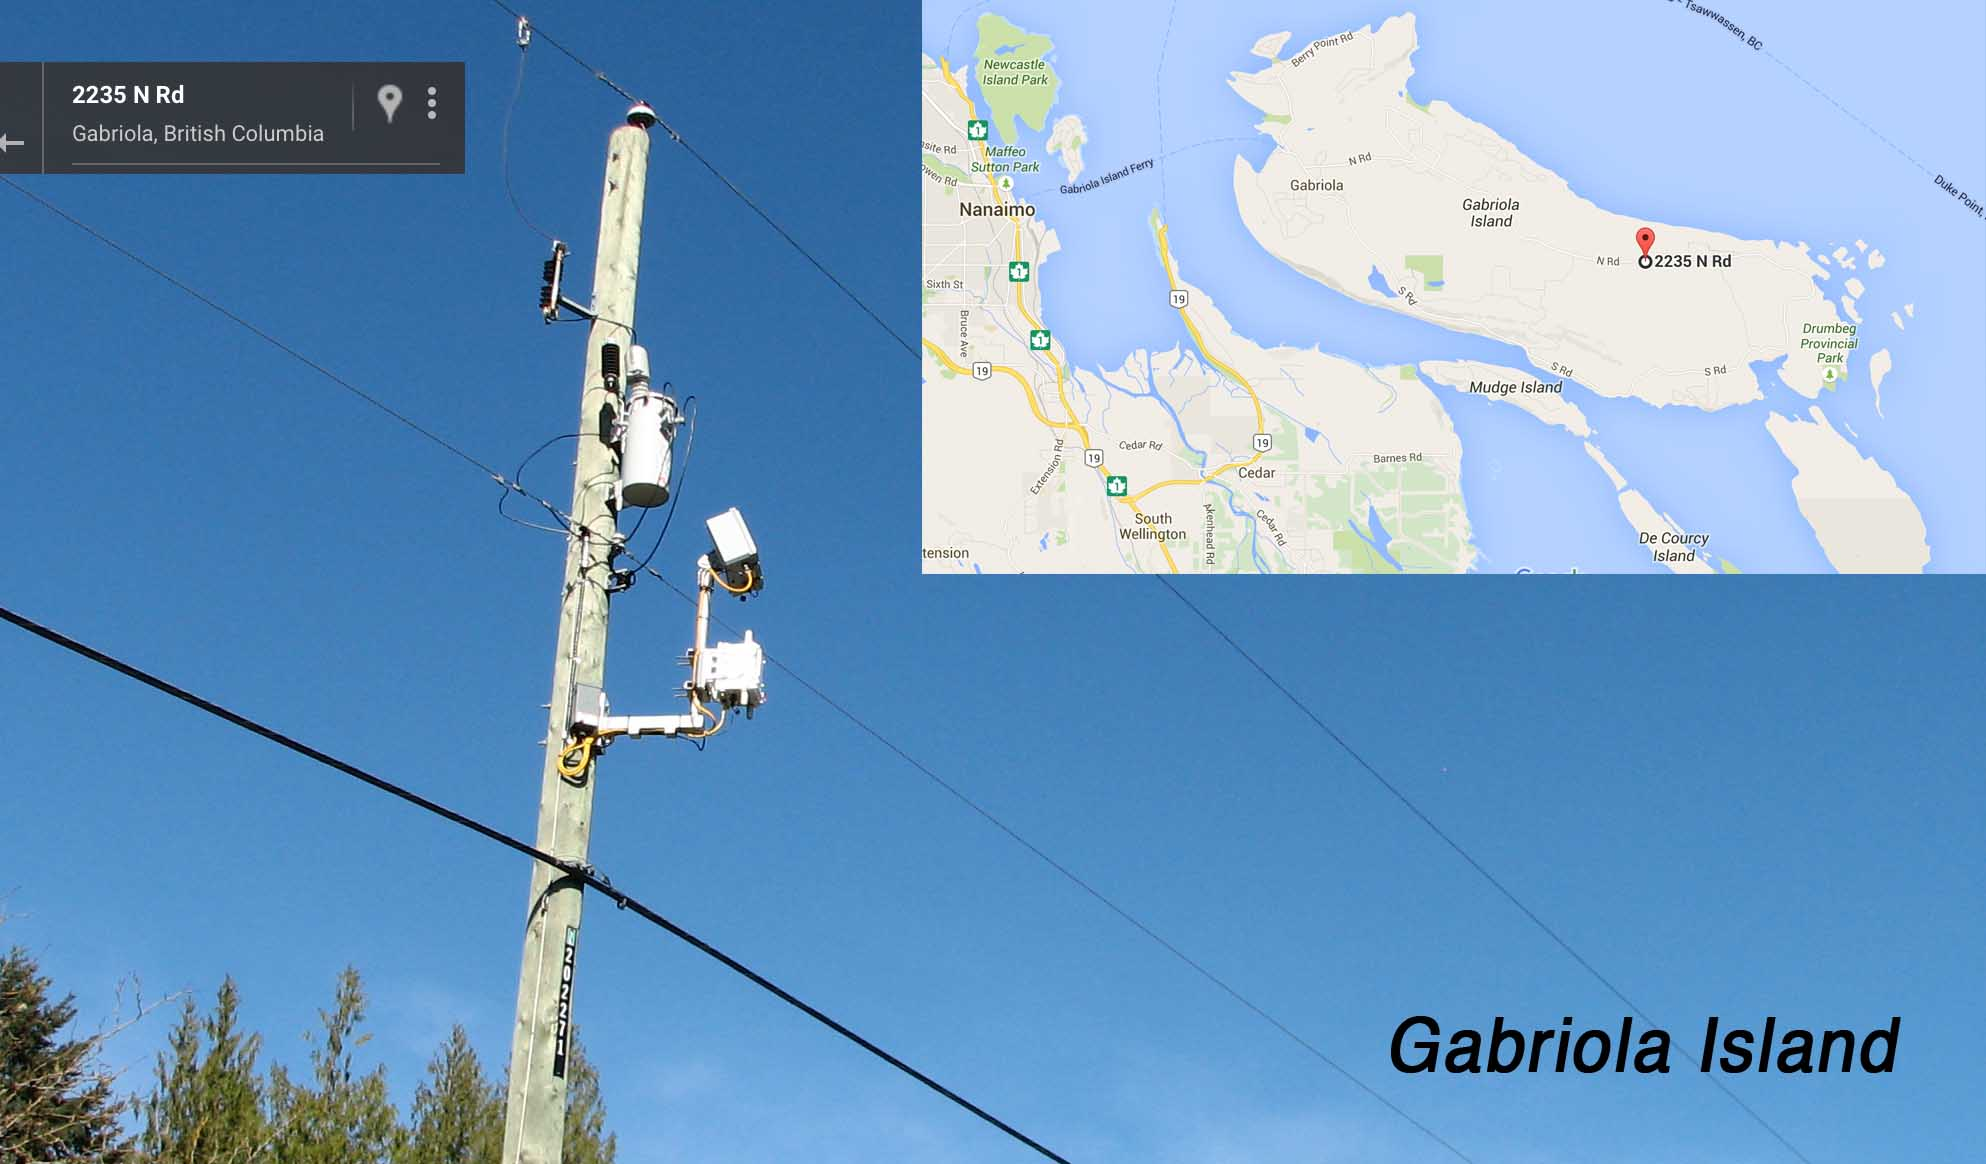 Gabriola Island - BC Hydro Cisco Itron Collector